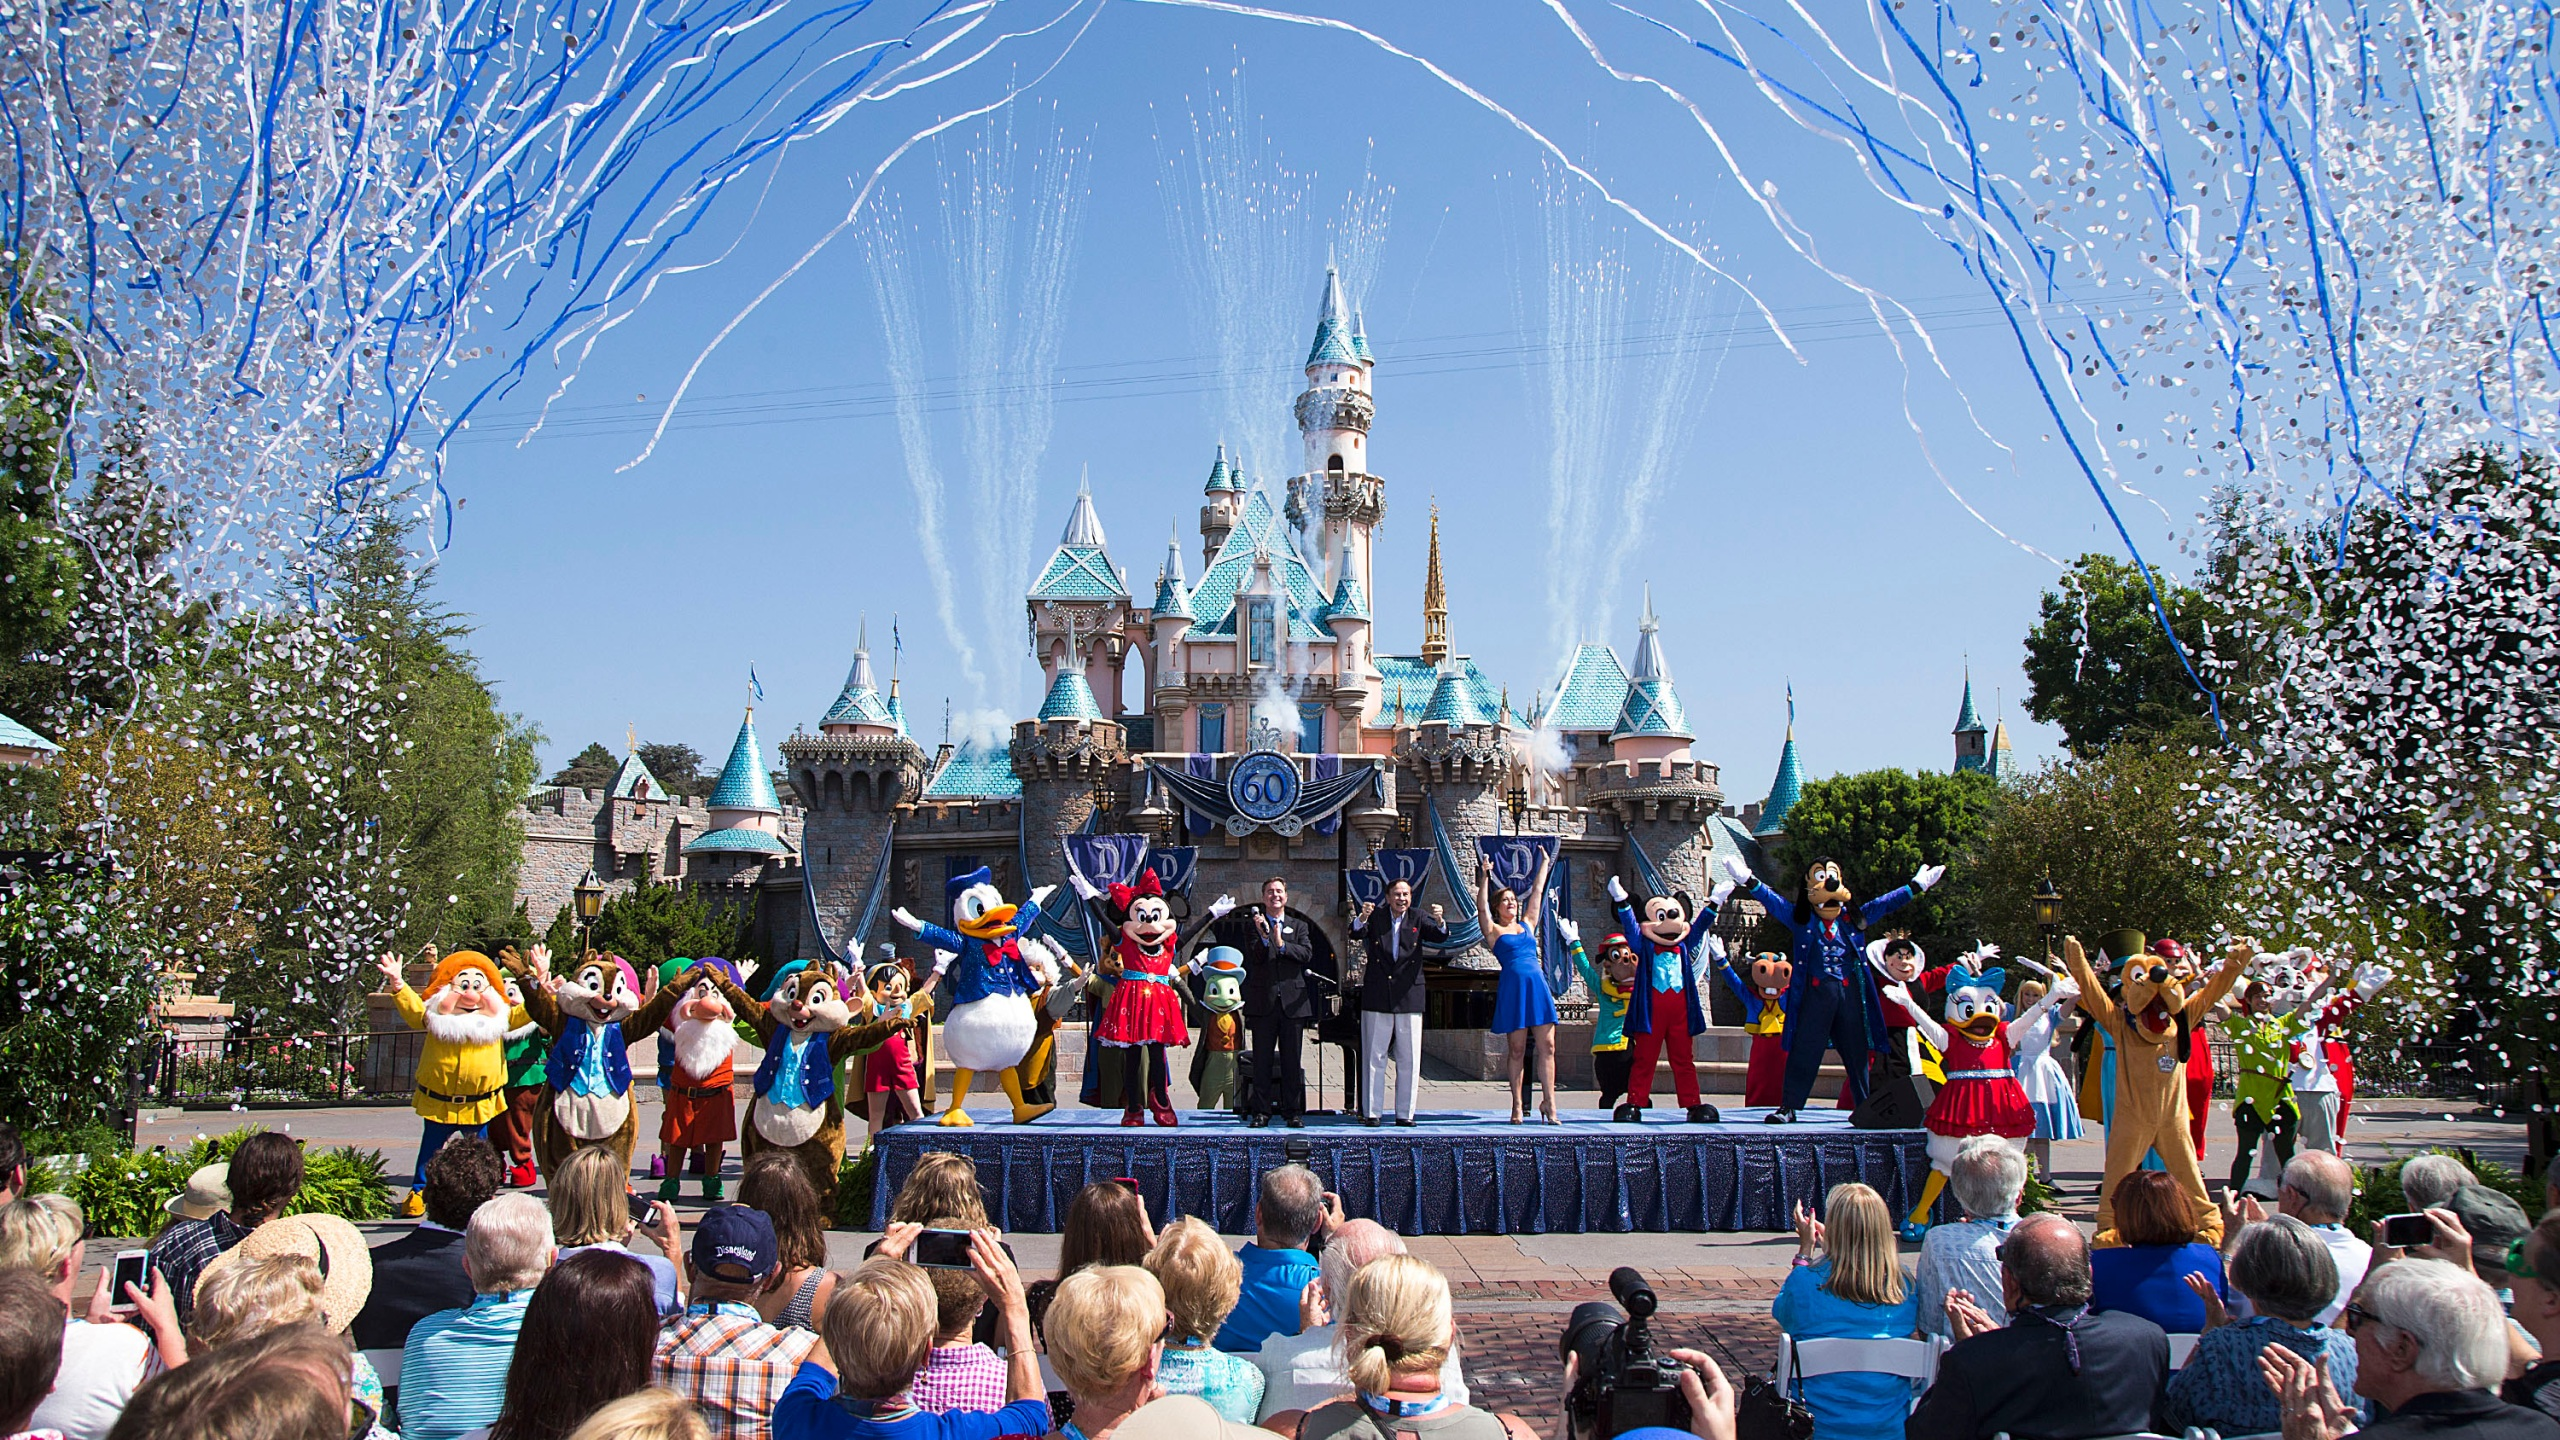 Mickey Mouse and his friends celebrate the 60th anniversary of Disneyland park on July 17, 2015. (Photo by Paul Hiffmeyer/Disneyland Resort via Getty Images)